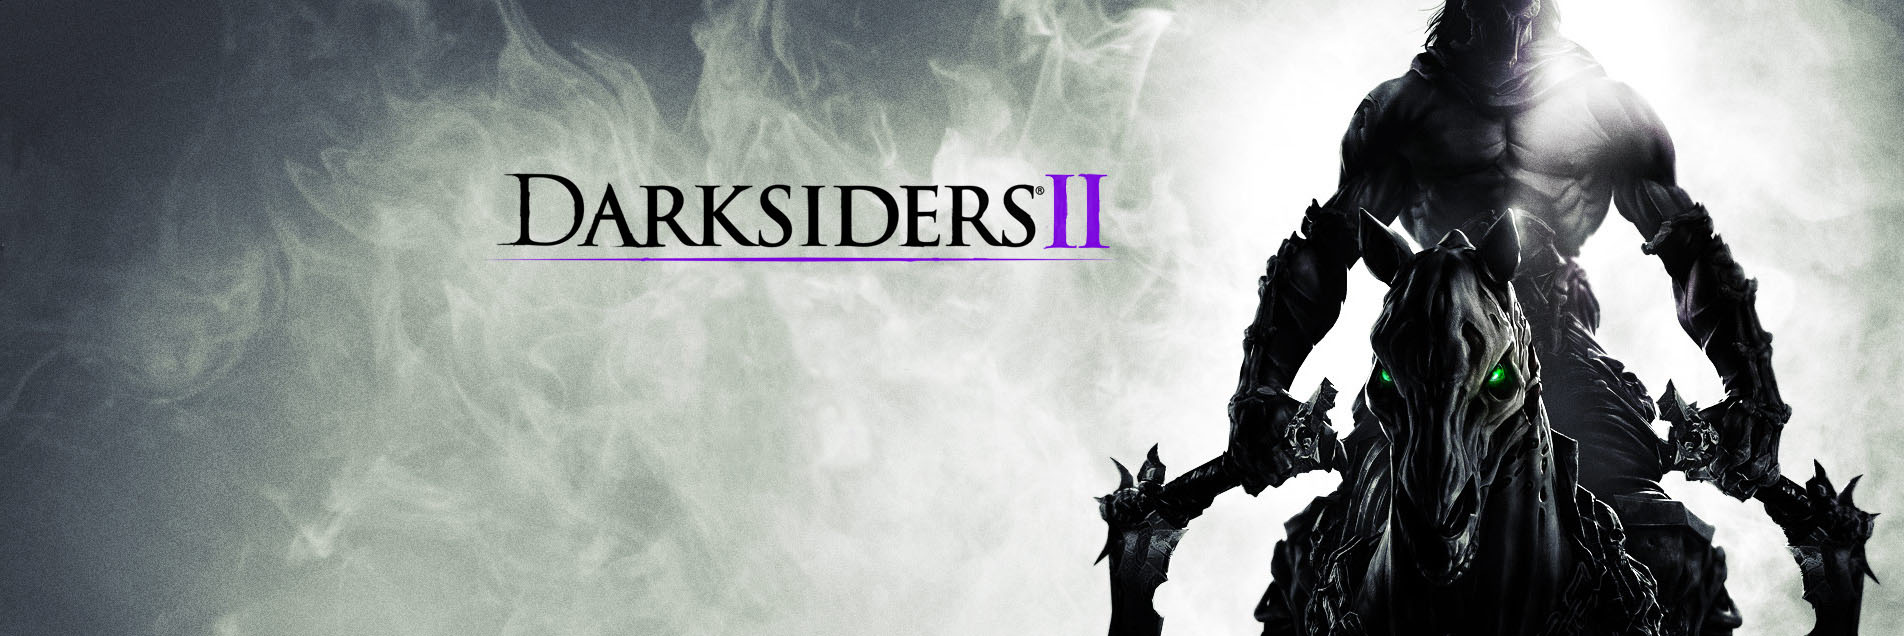 Darksiders 2 Official Cover Art Image